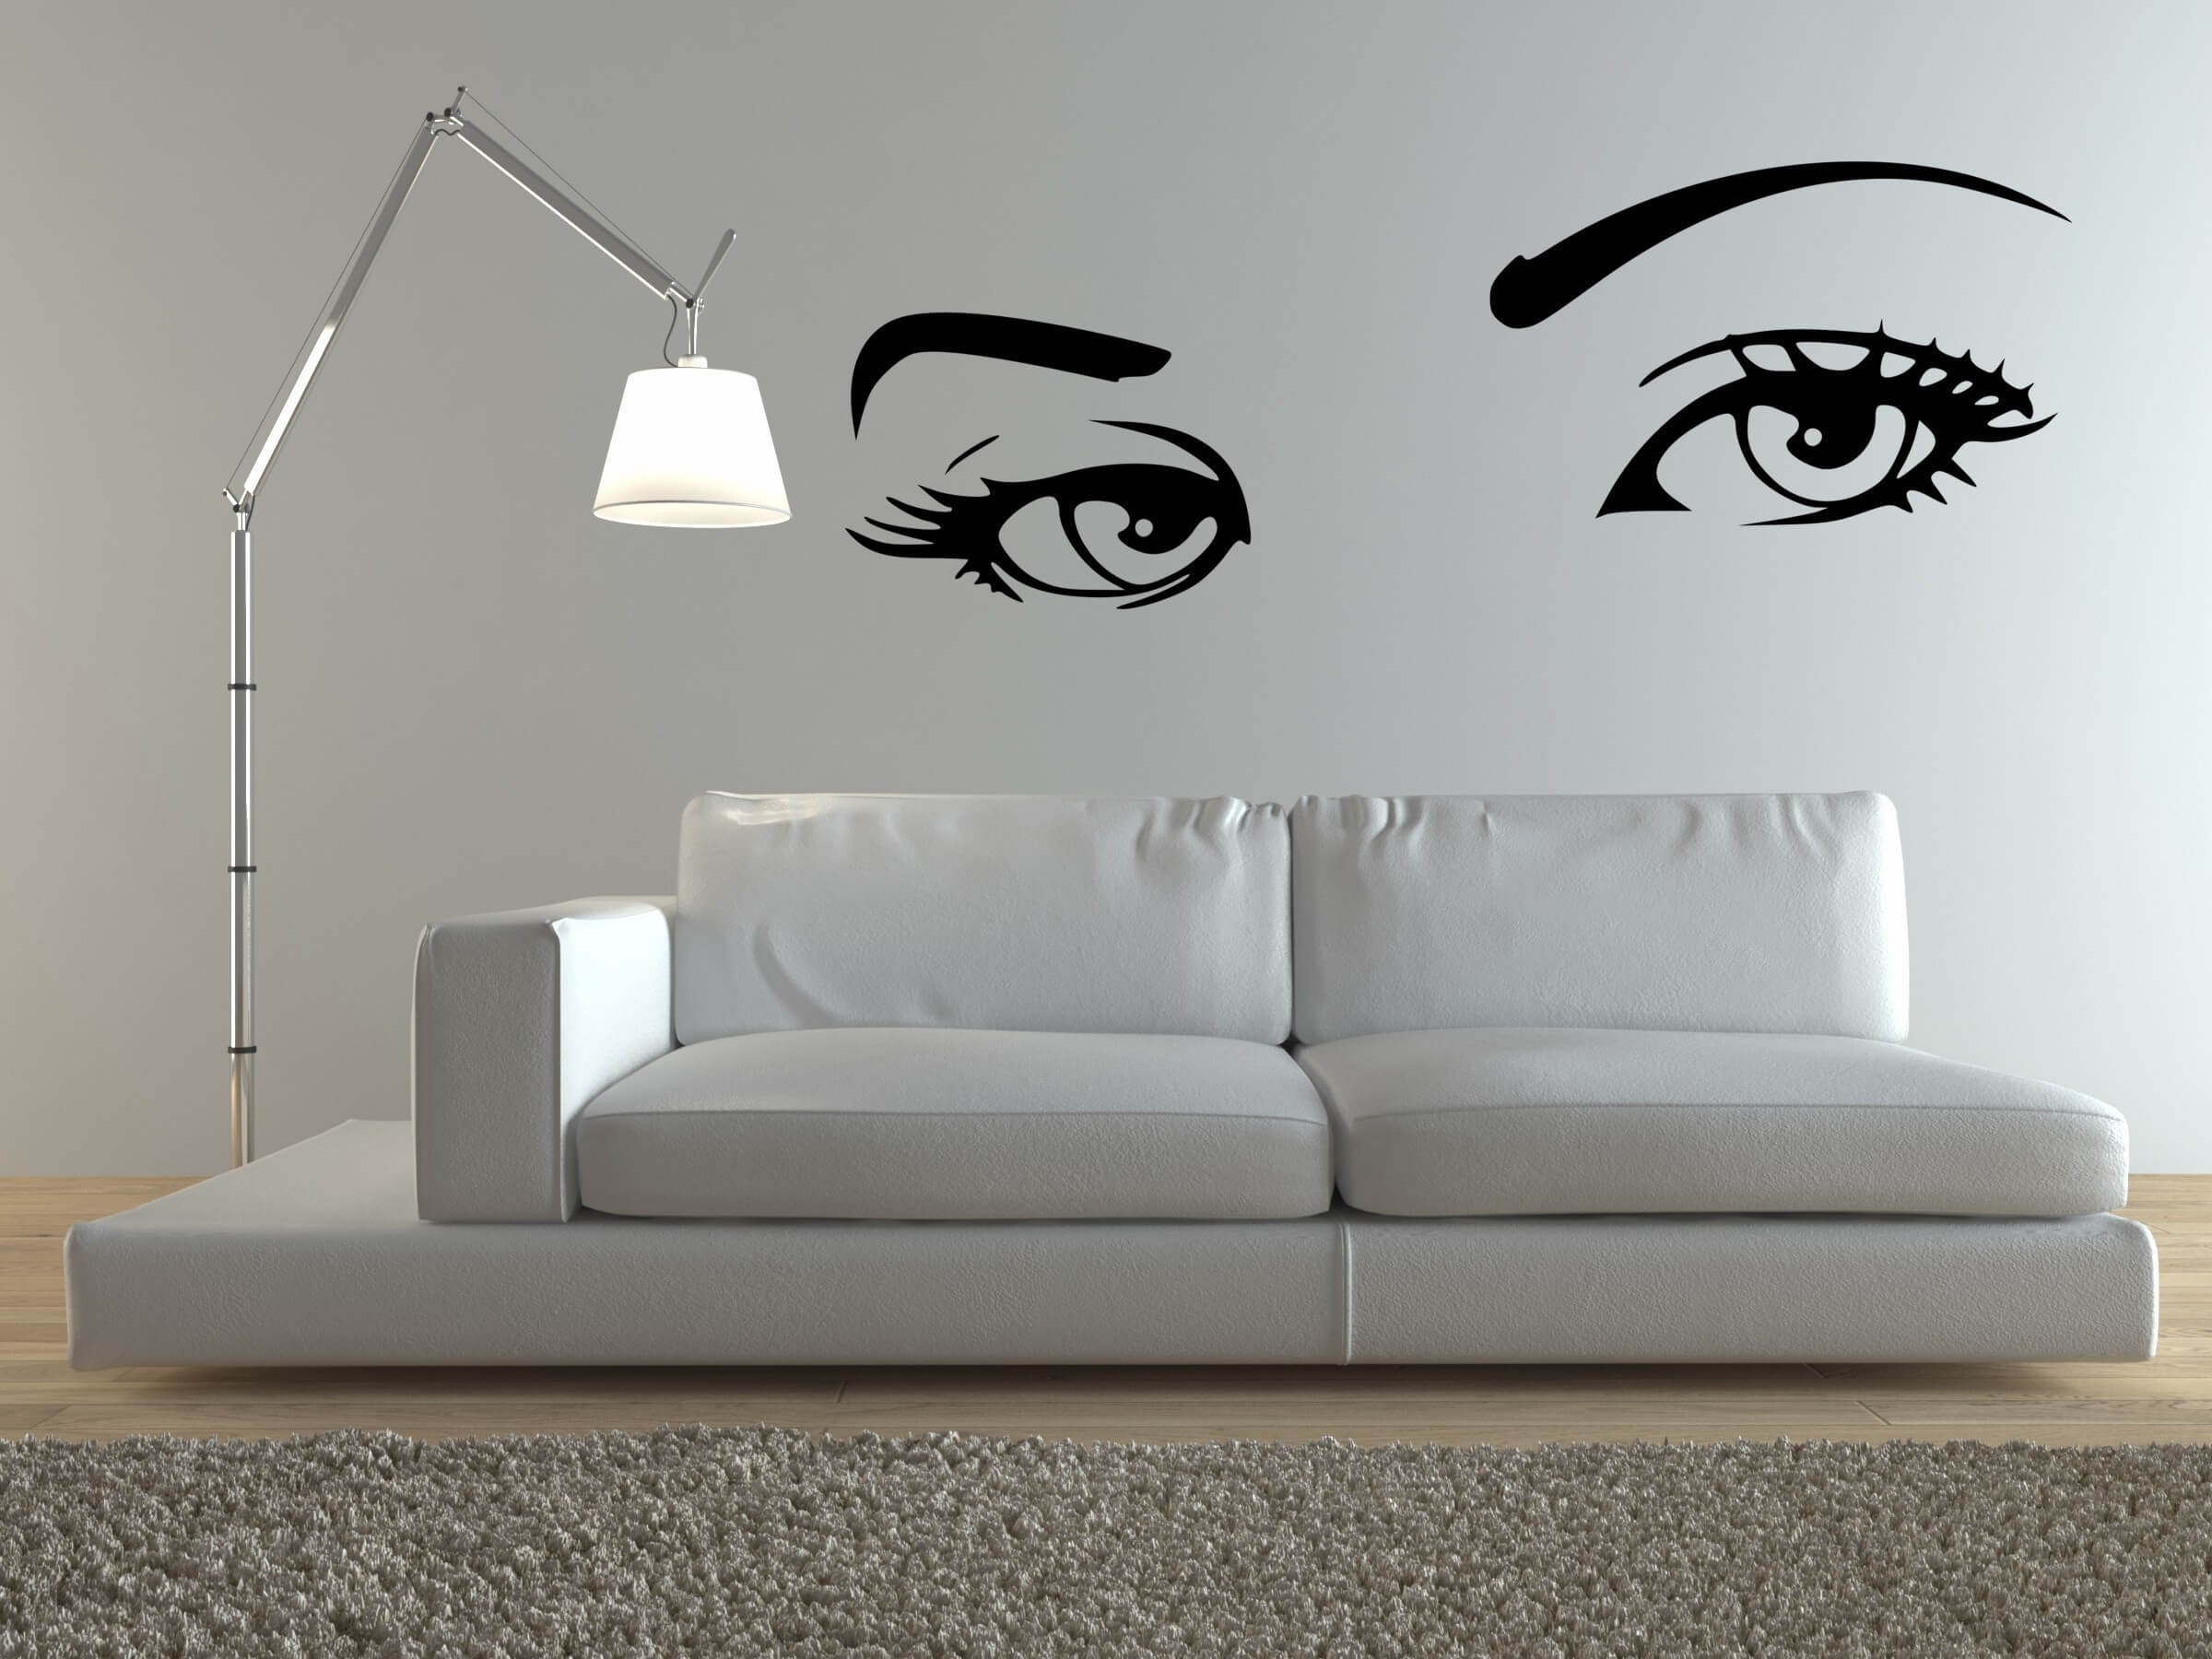 Art in the living room walls. Source https://howtofurnish.com/wall-decals/